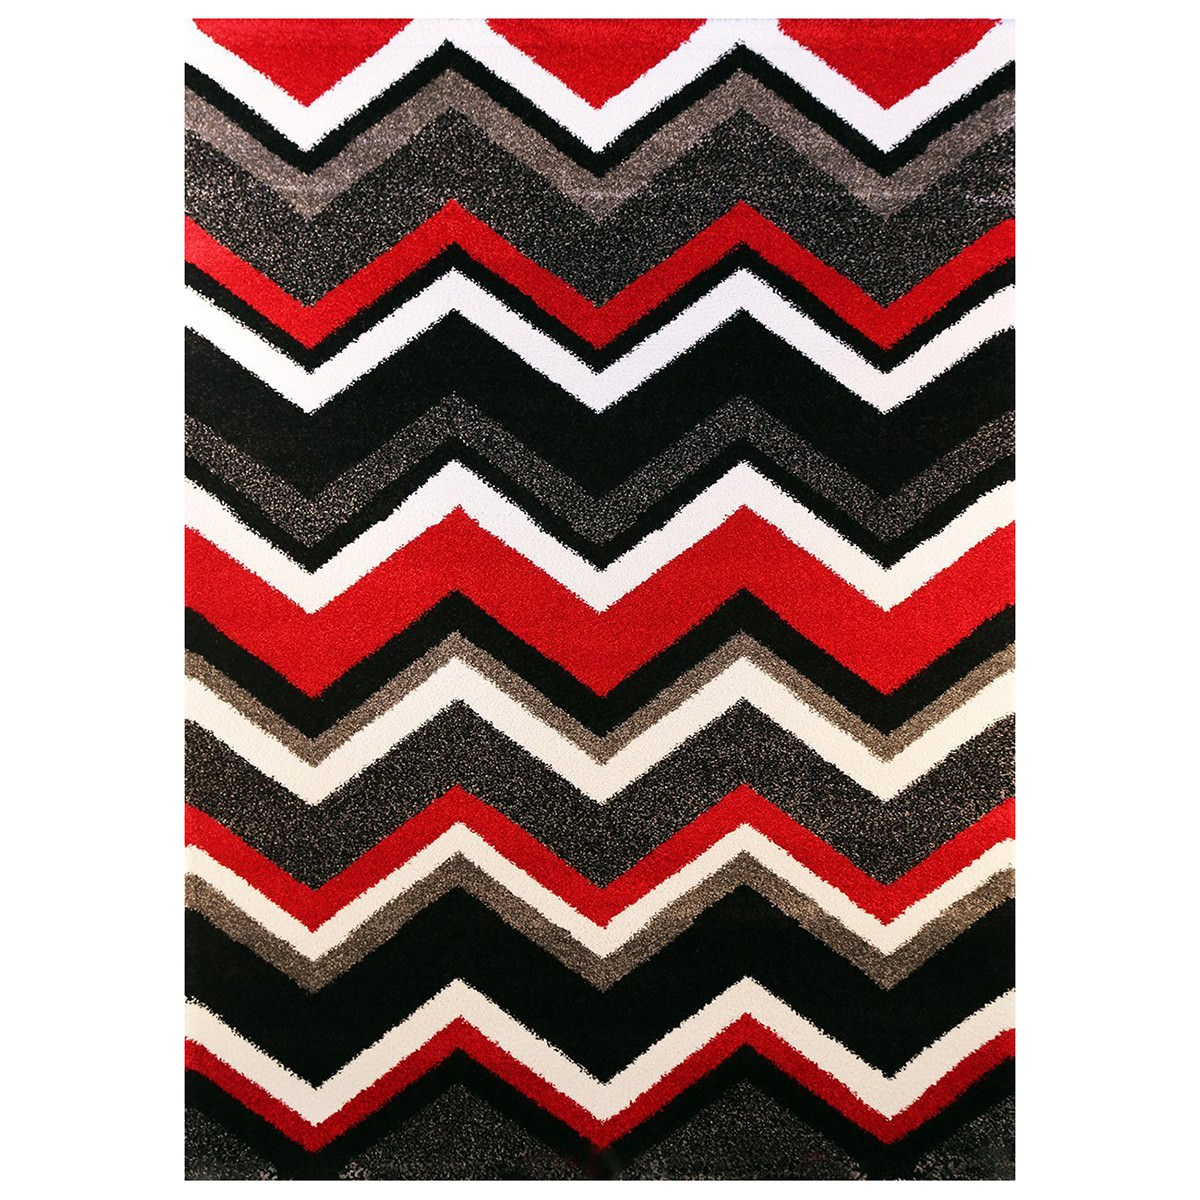 Valens Chevron Modern Rug, 240x330cm, Red / Black